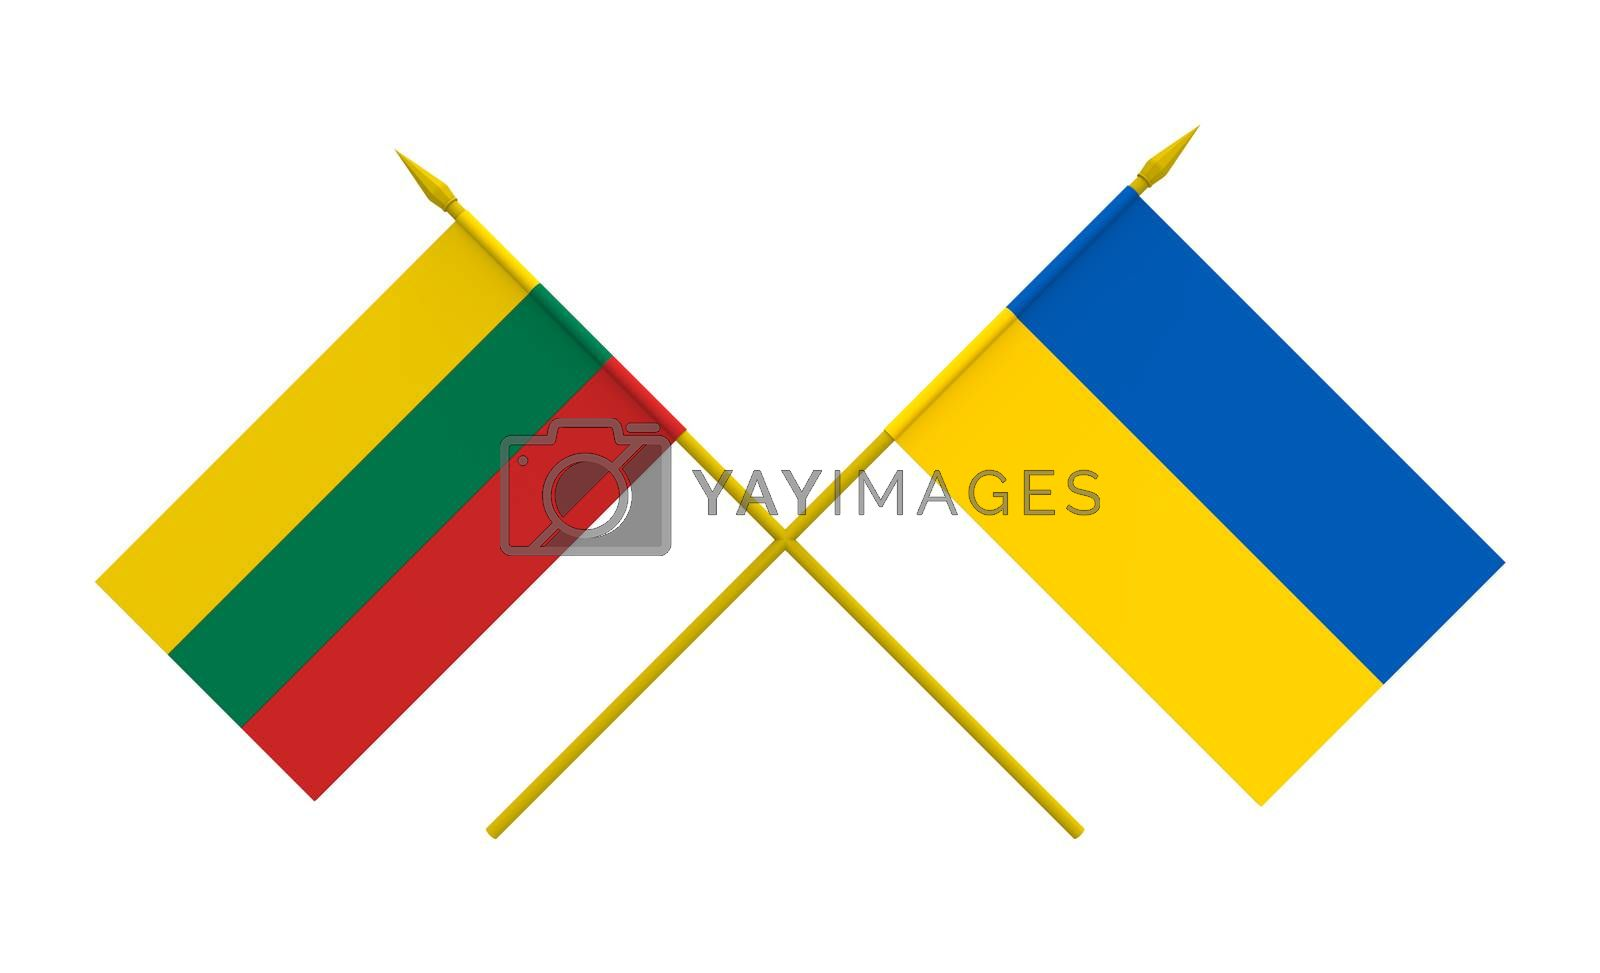 Royalty free image of Flags, Lithuania and Ukraine by Boris15